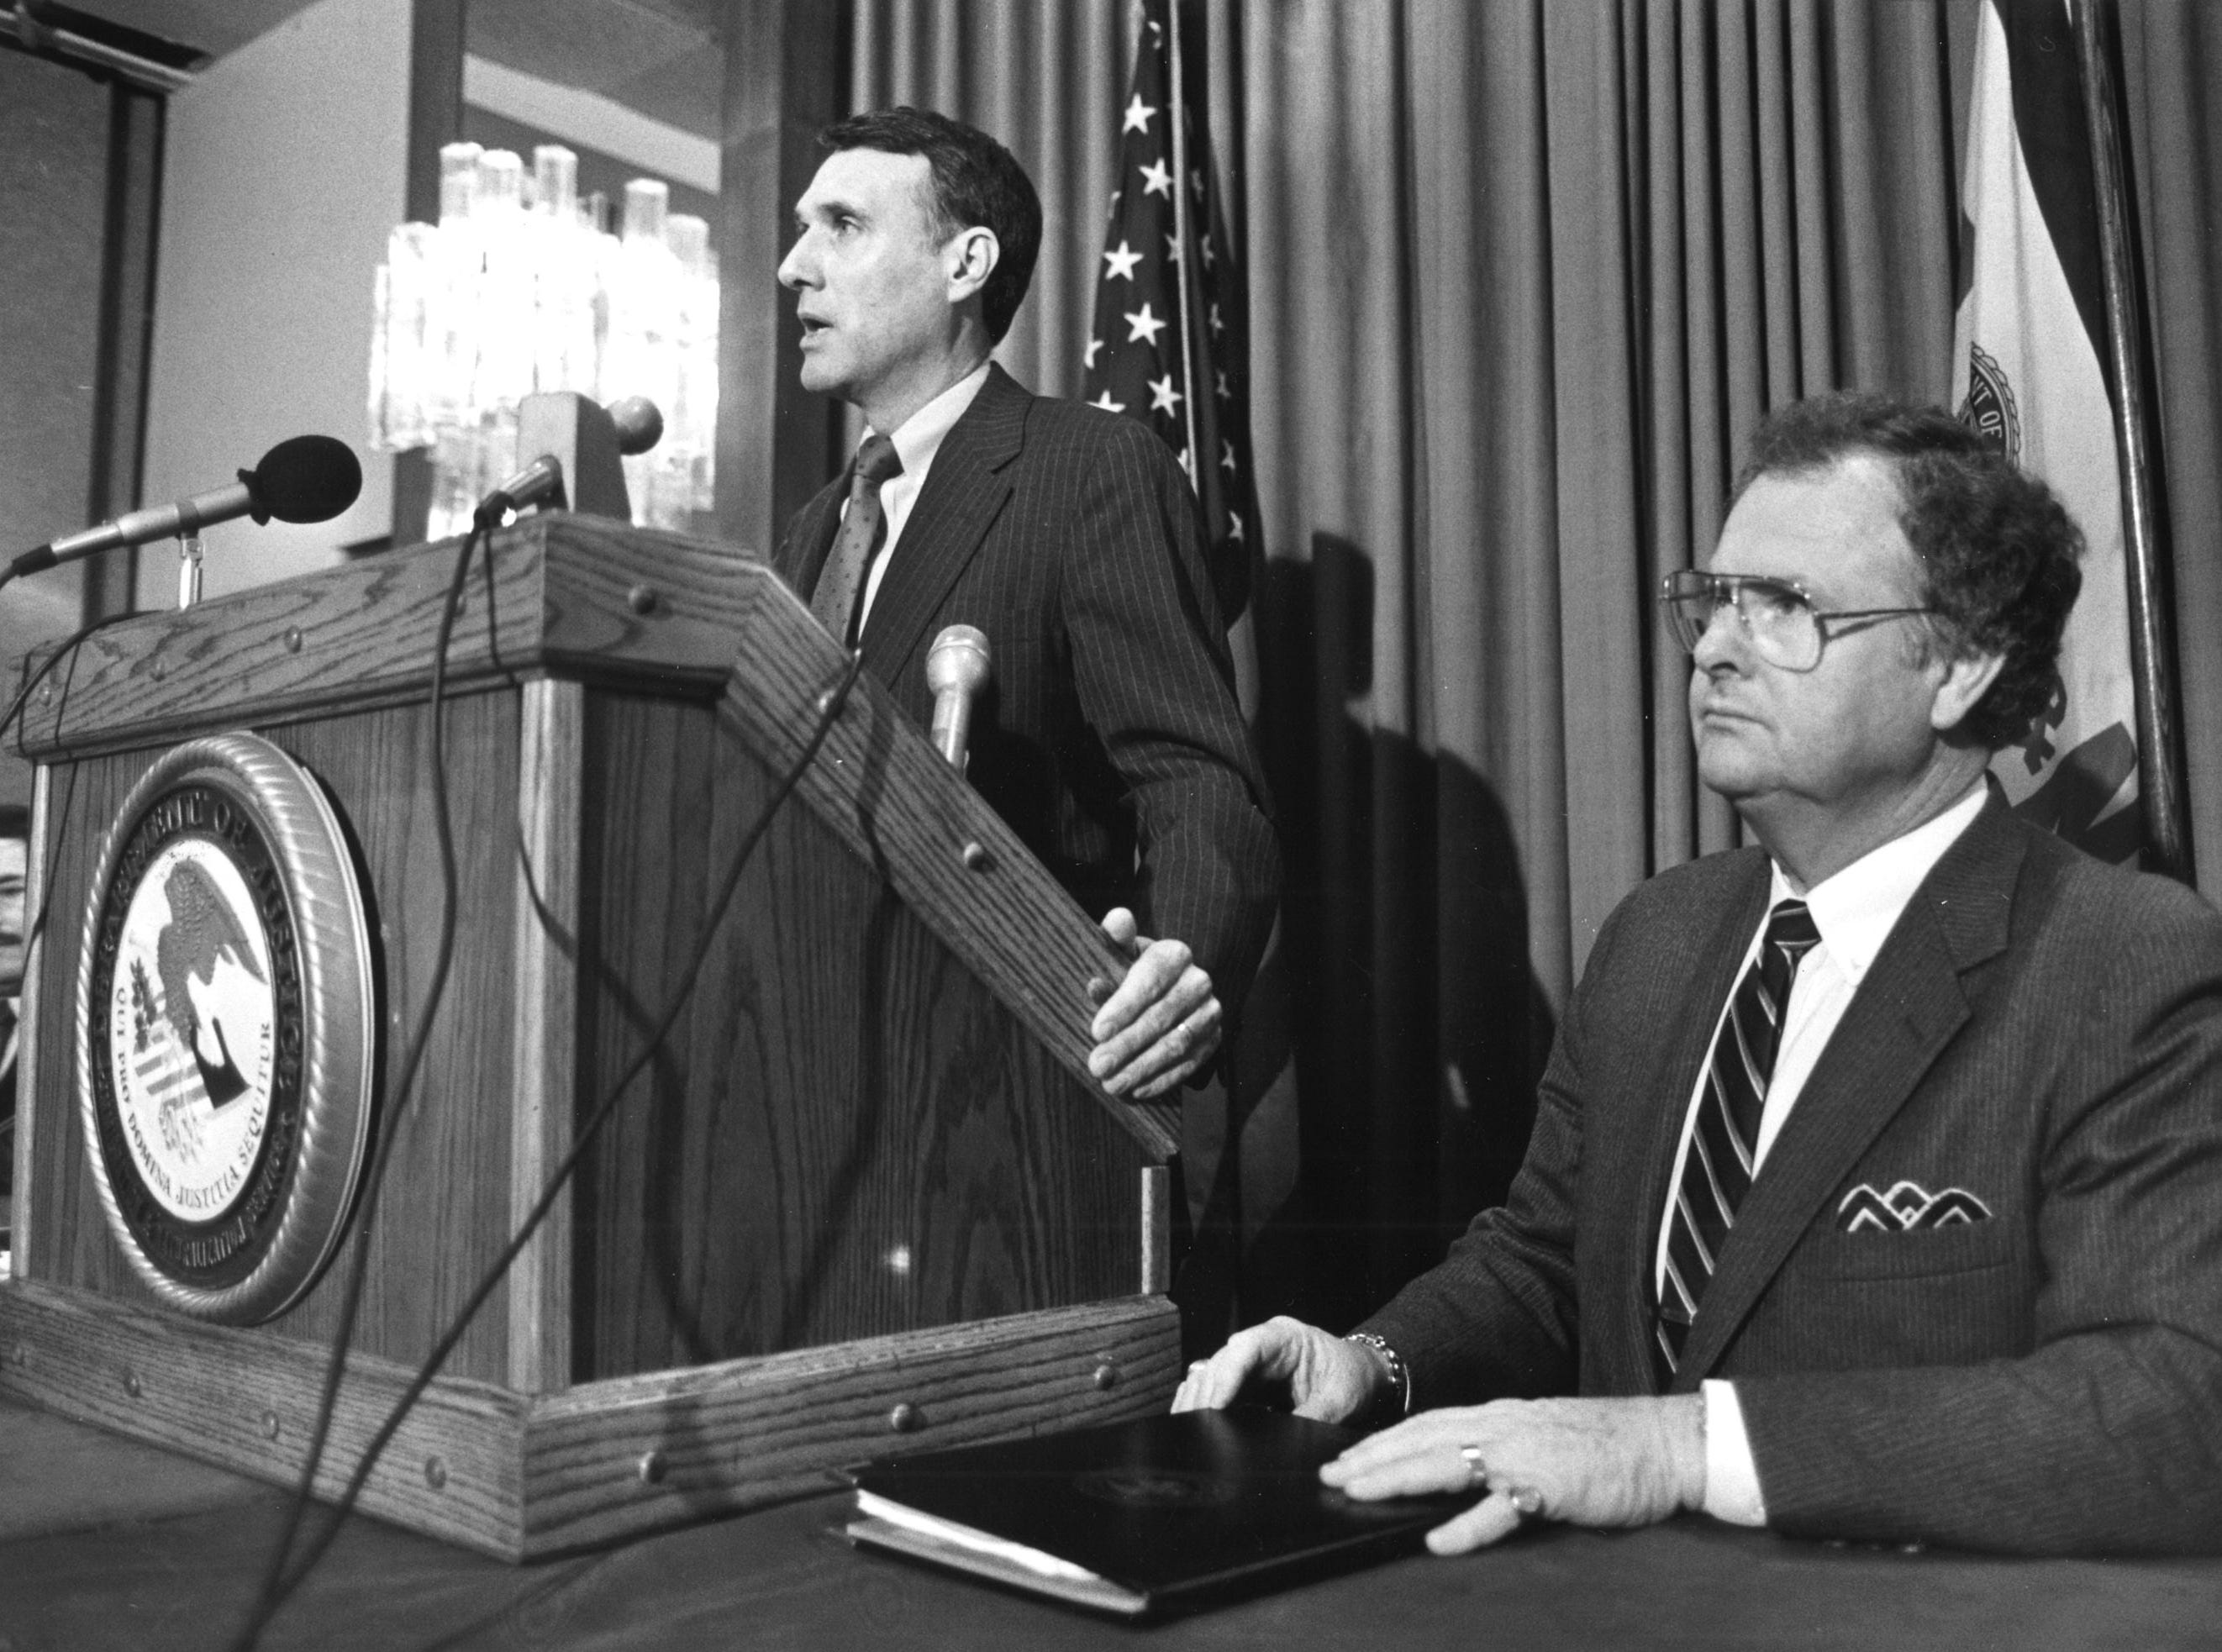 Arizona Rep. Jon Kyl and Immigration and Naturalization Service regional direction Harold Eyell, April 4, 1987.